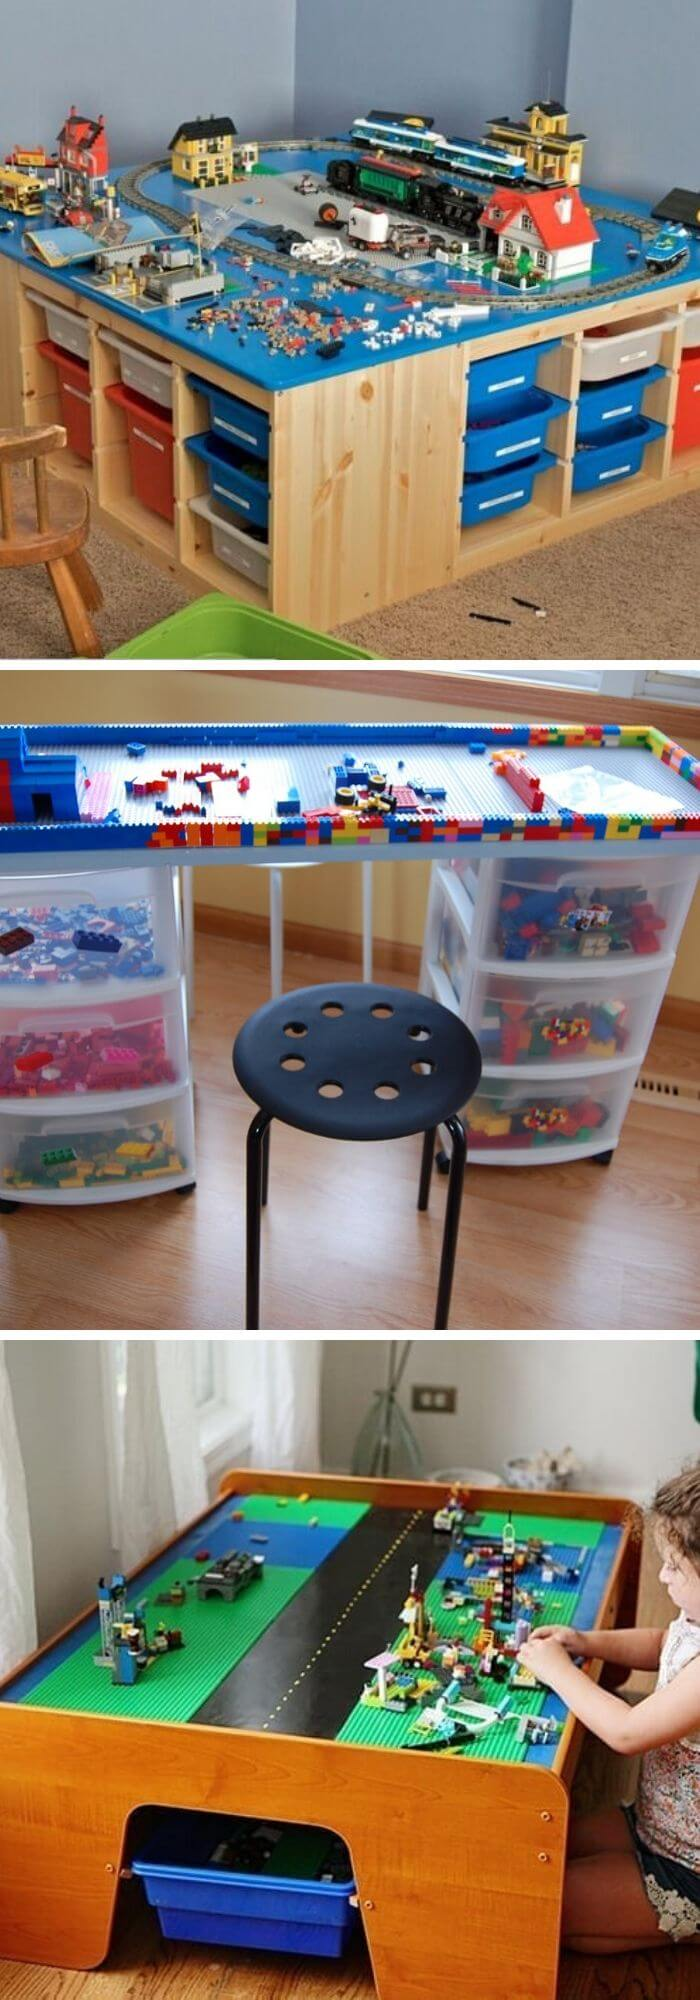 The latest technique is the Lego table